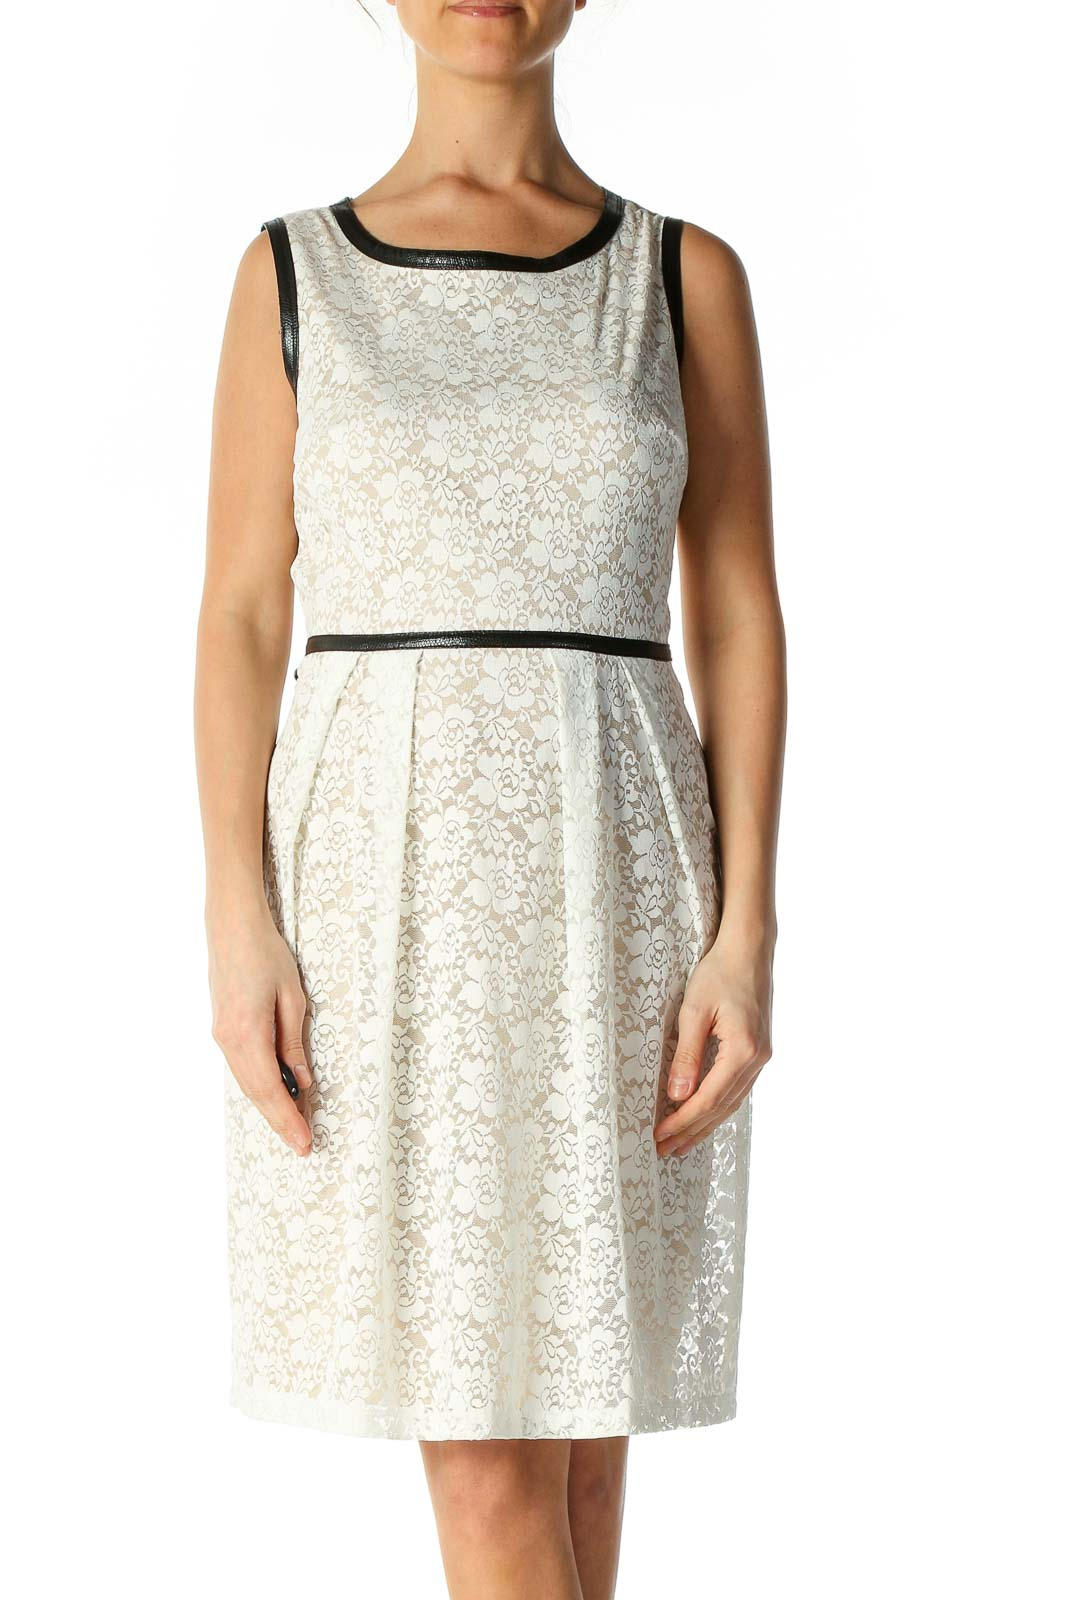 White Lace Casual A-Line Dress Front